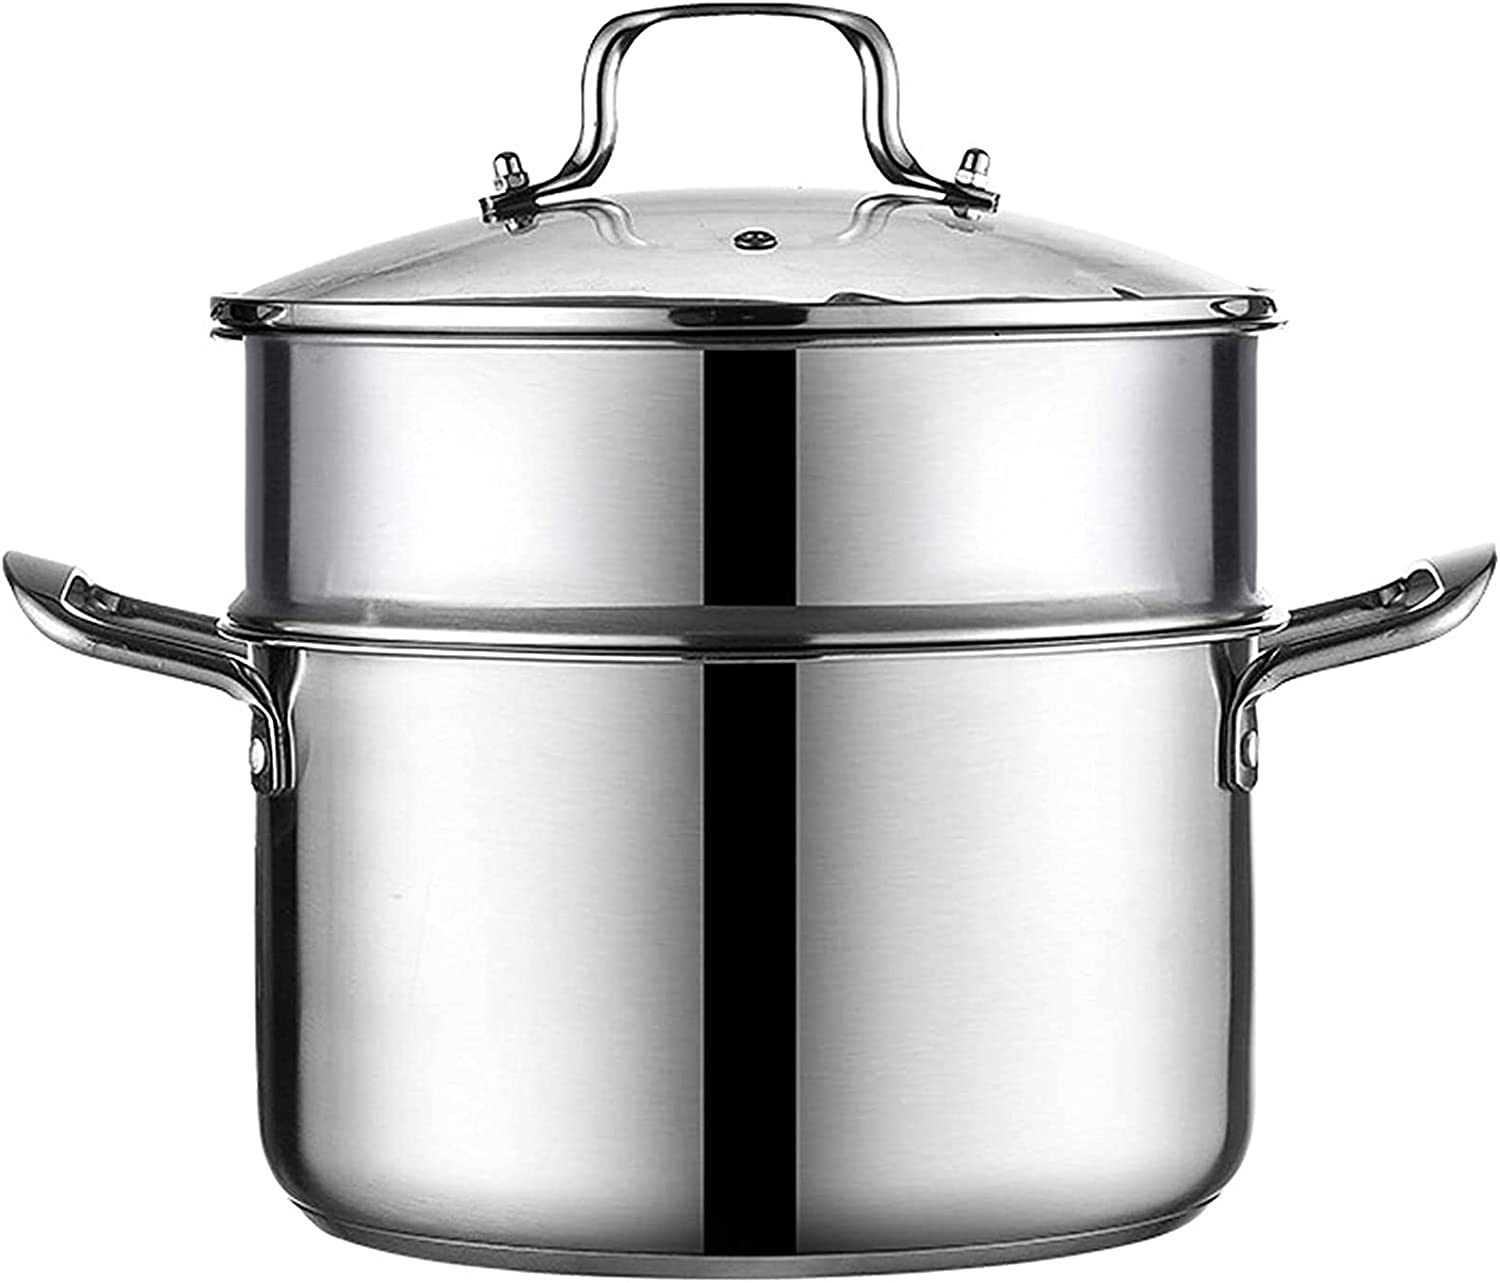 Pans for cooking Steamer Pot Stainless Steel Cooker Food Steamer Steamer Pot Pan Set with Lid Induction Cooker Pan for Kitchen Cooking Tool Style 2 24cm